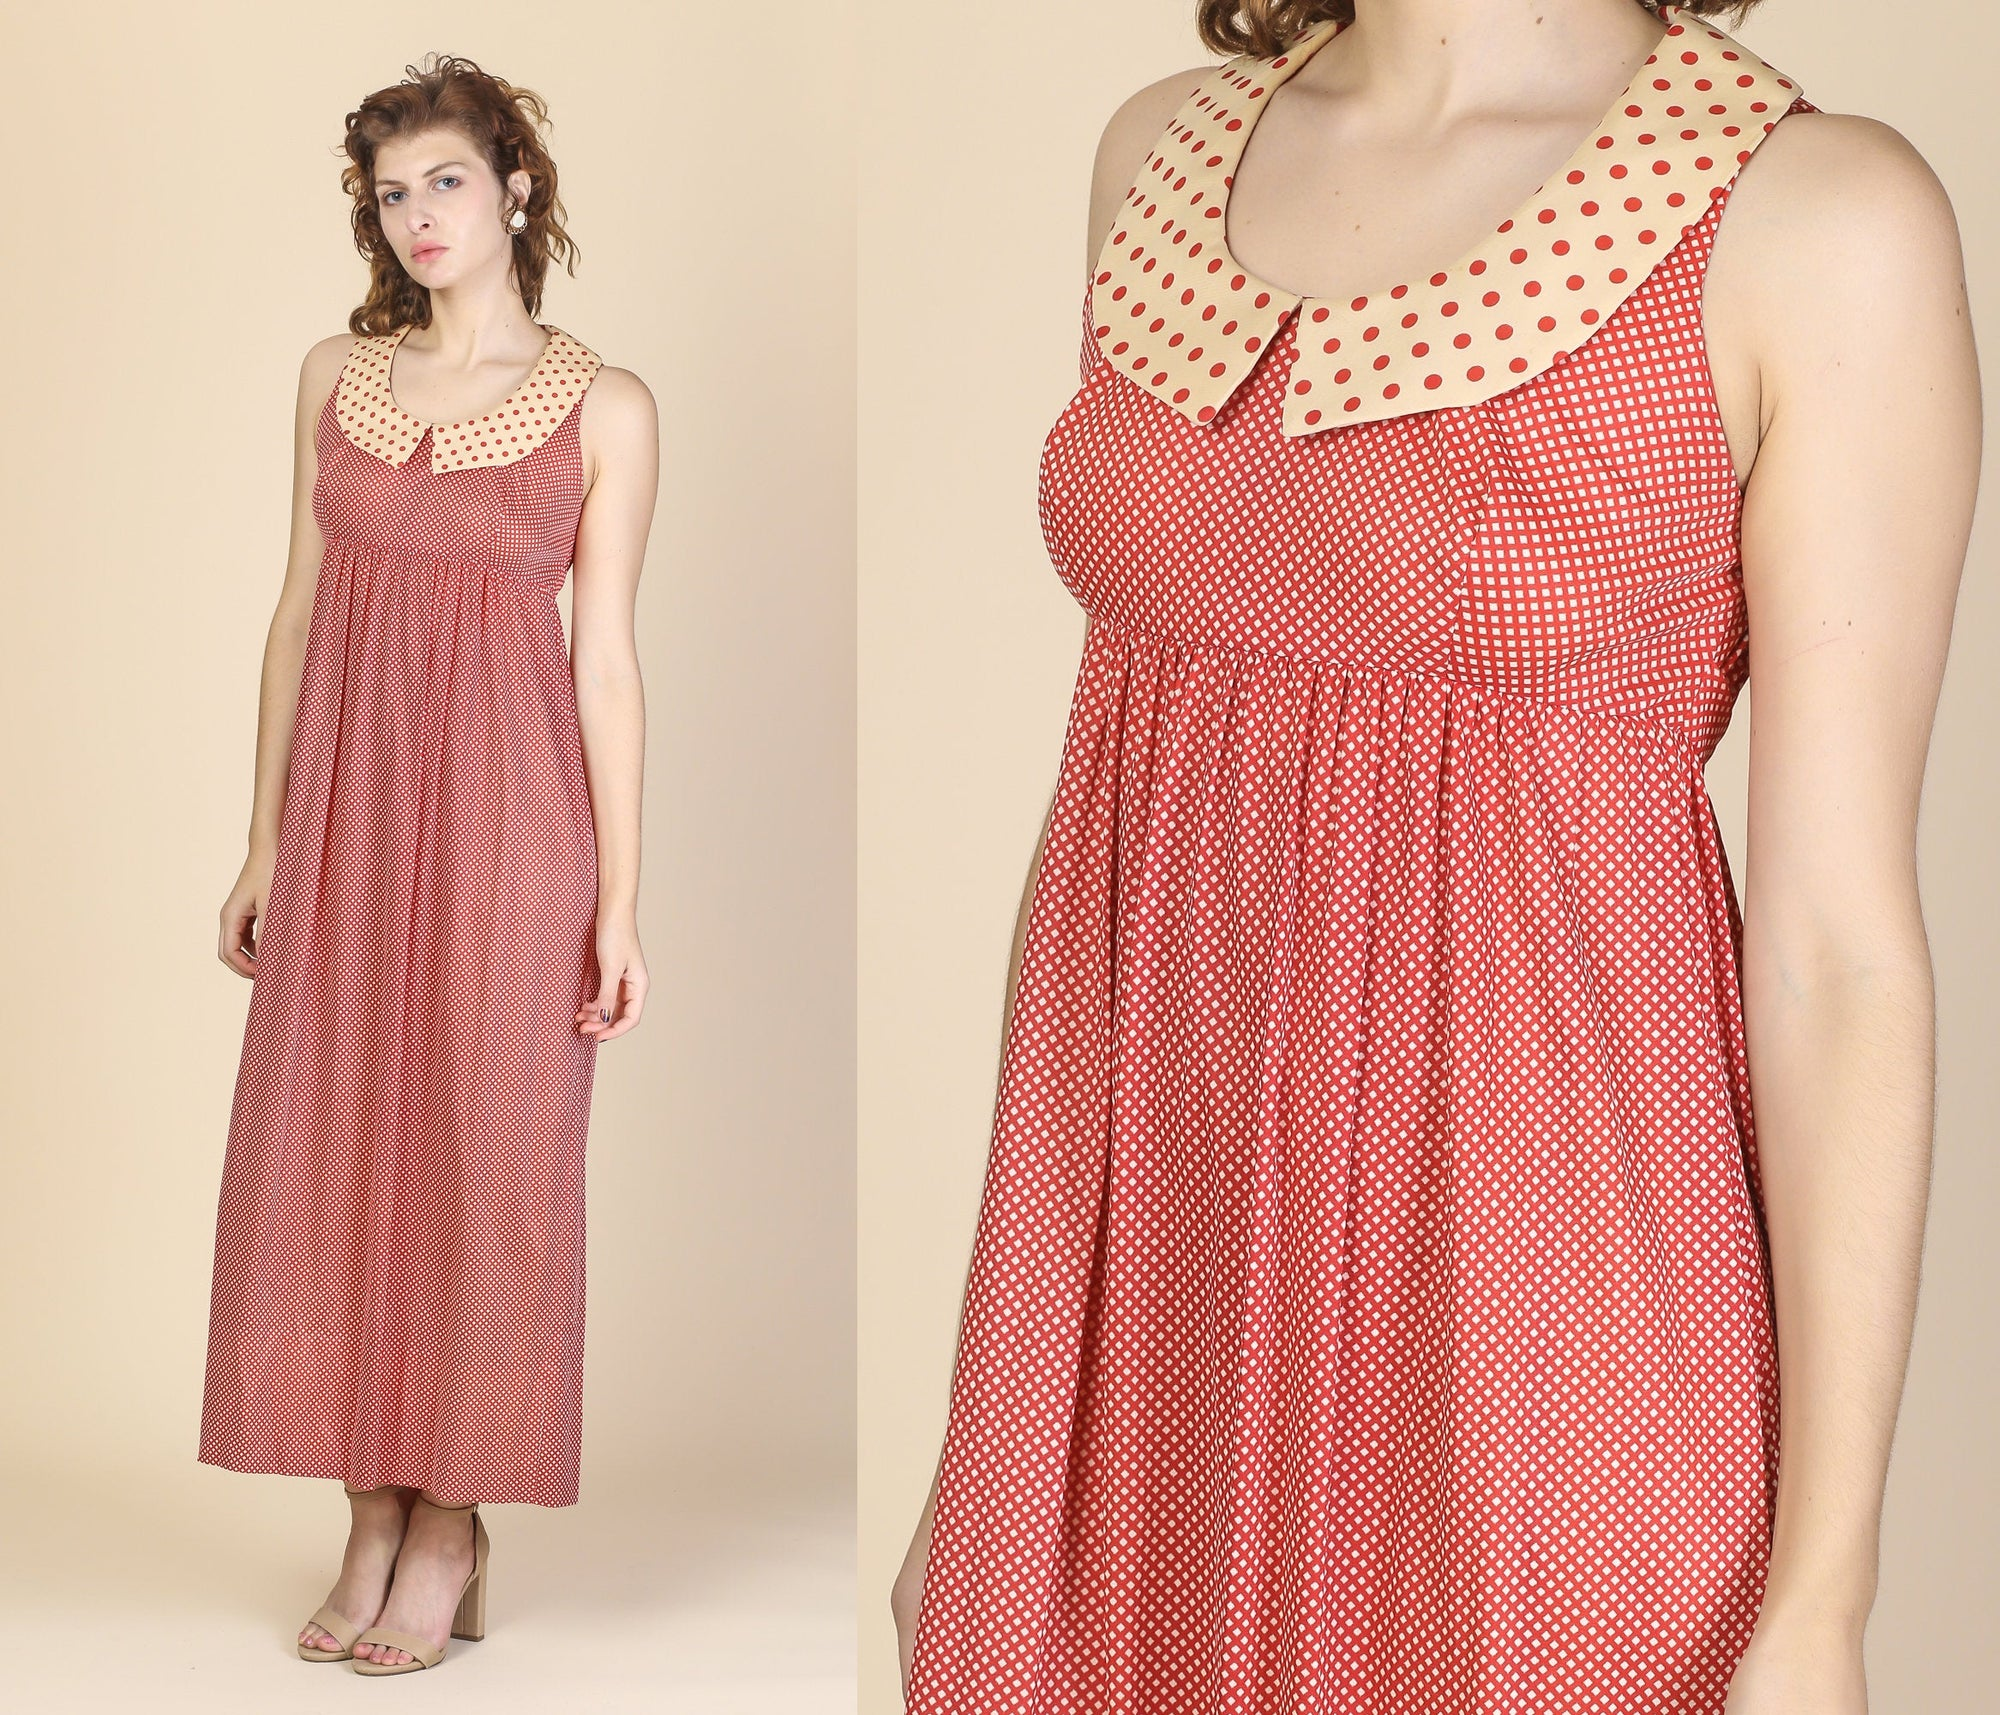 70s Polka Dot Empire Waist Dress - Small to Medium